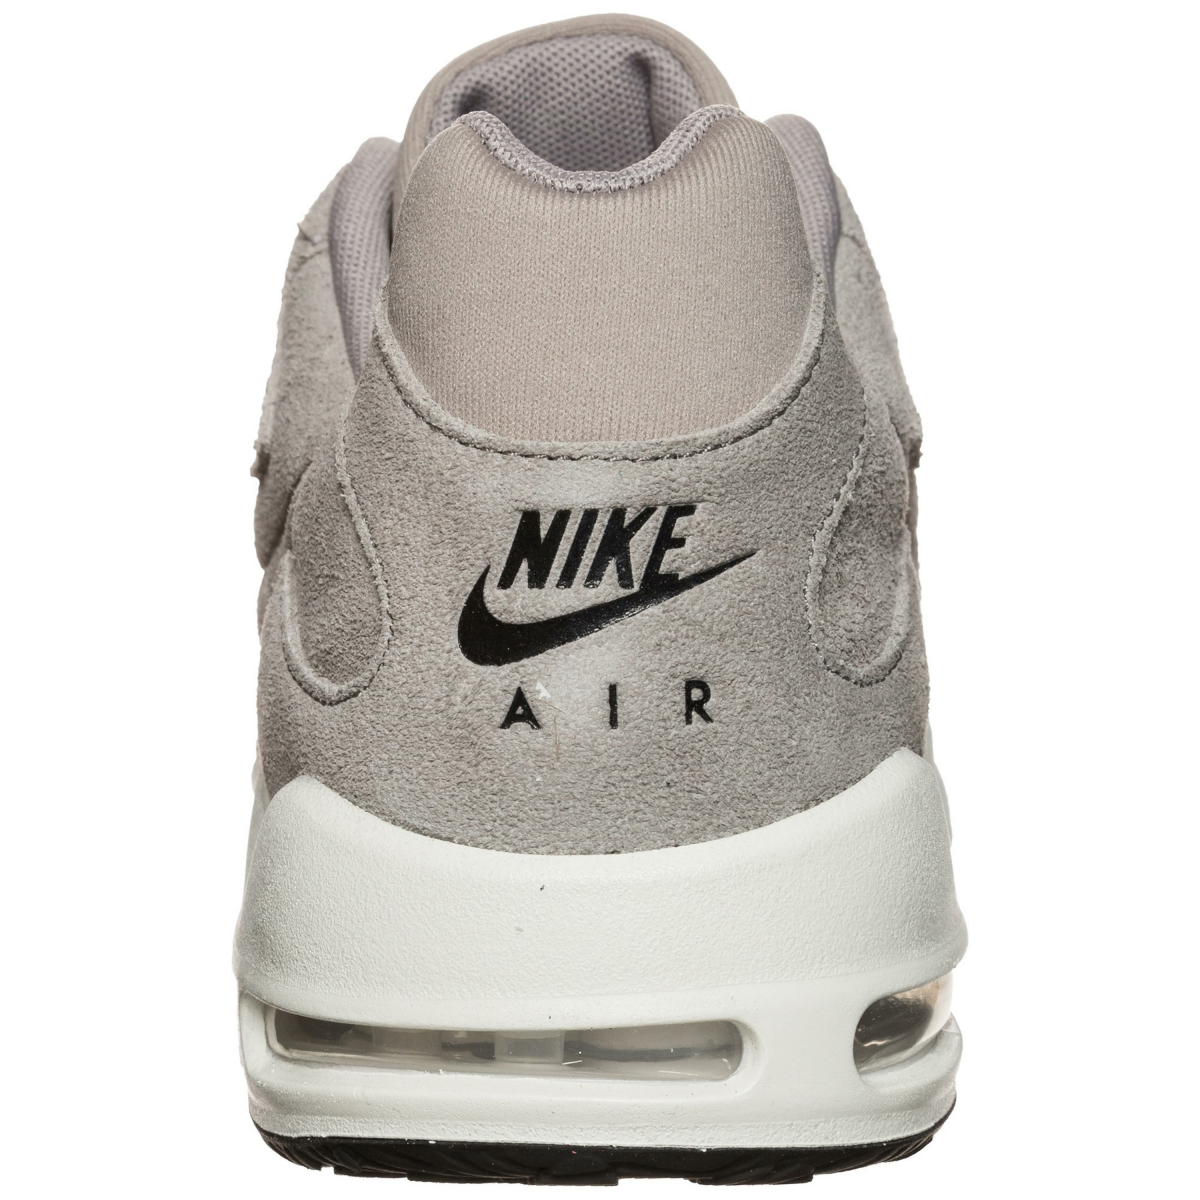 b2d6ff3804f5 Nike AIR MAX GUILE PREMIUM in grau - 916770-002